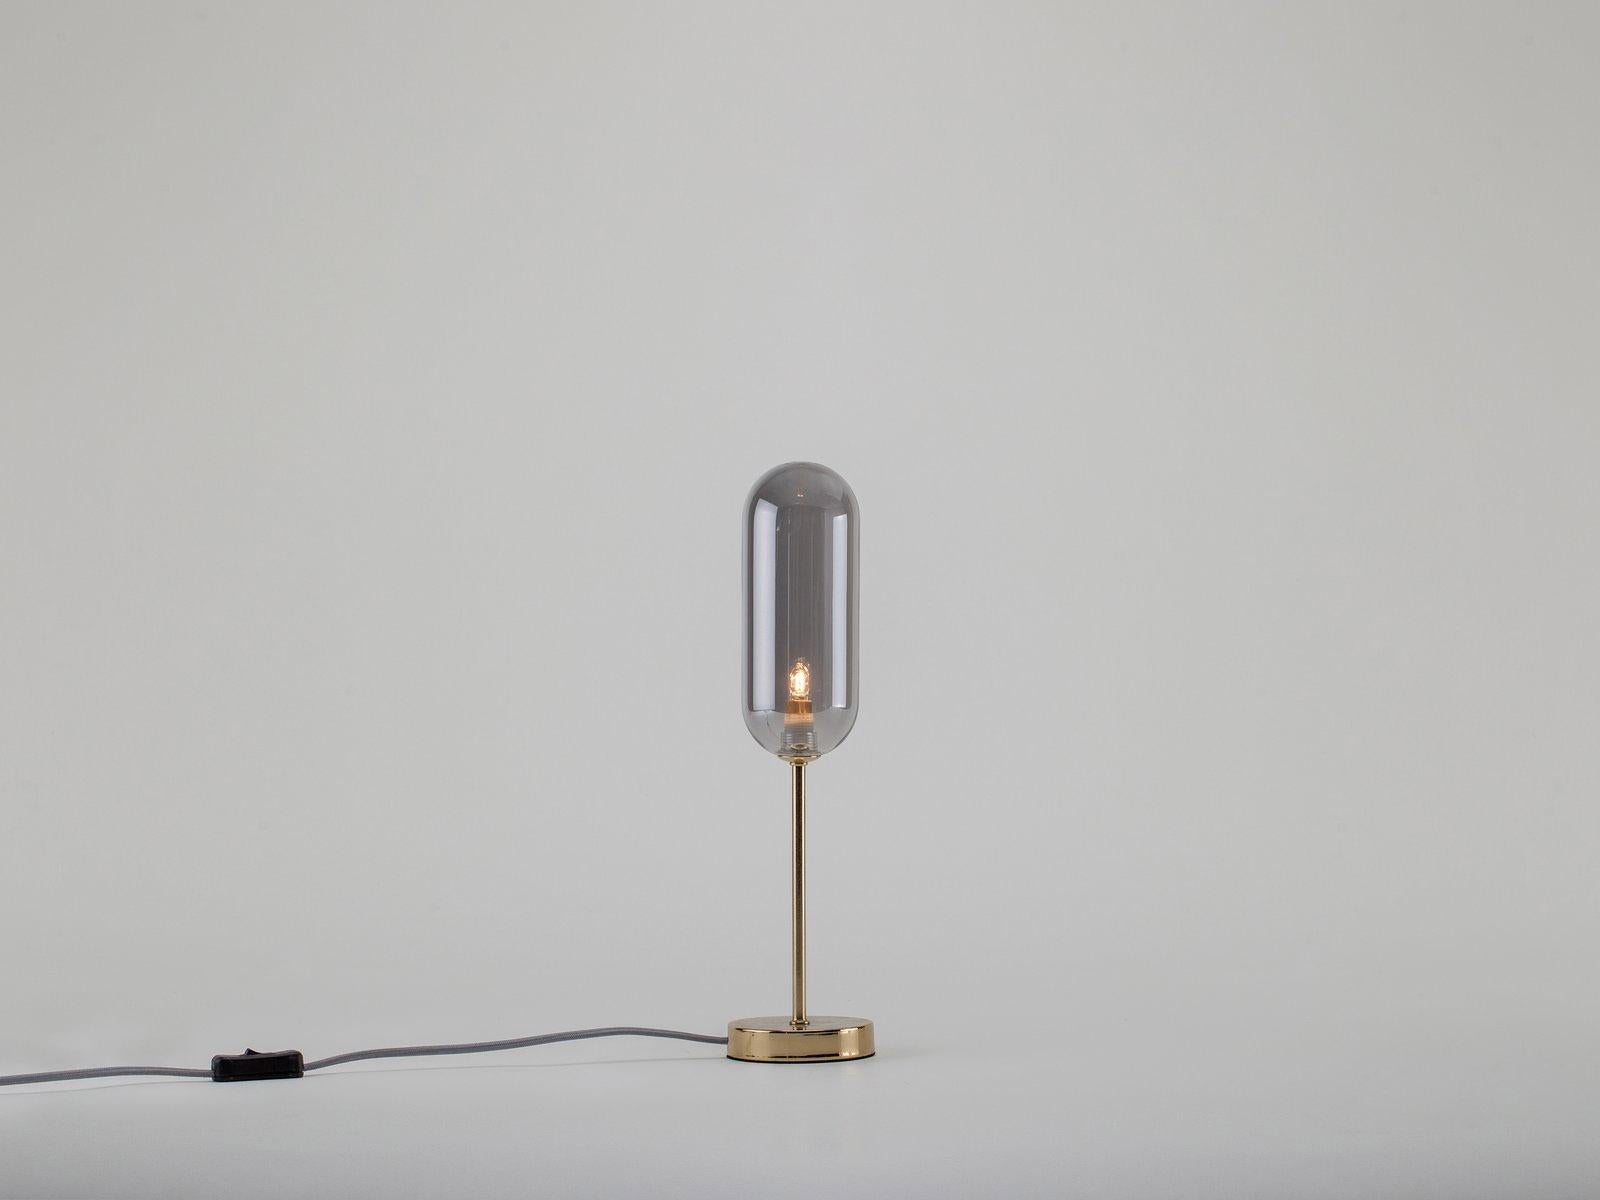 best bedside lamps 2019